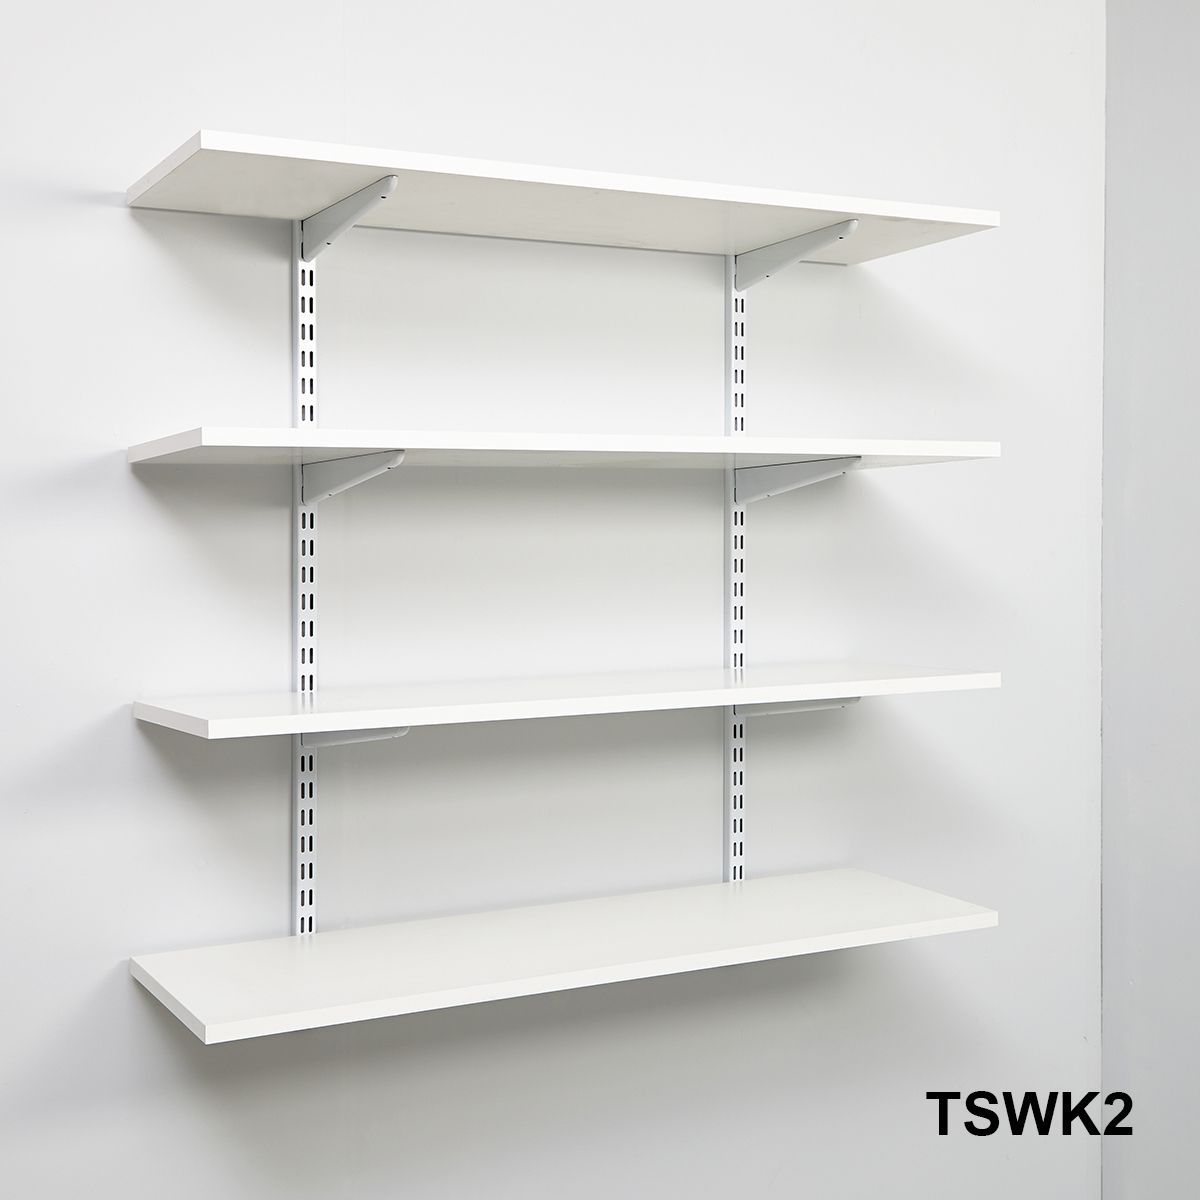 Wall Mounted Garage Shelves Wall Mounted Bookshelves Wall Bookshelves Metal Wall Shelves